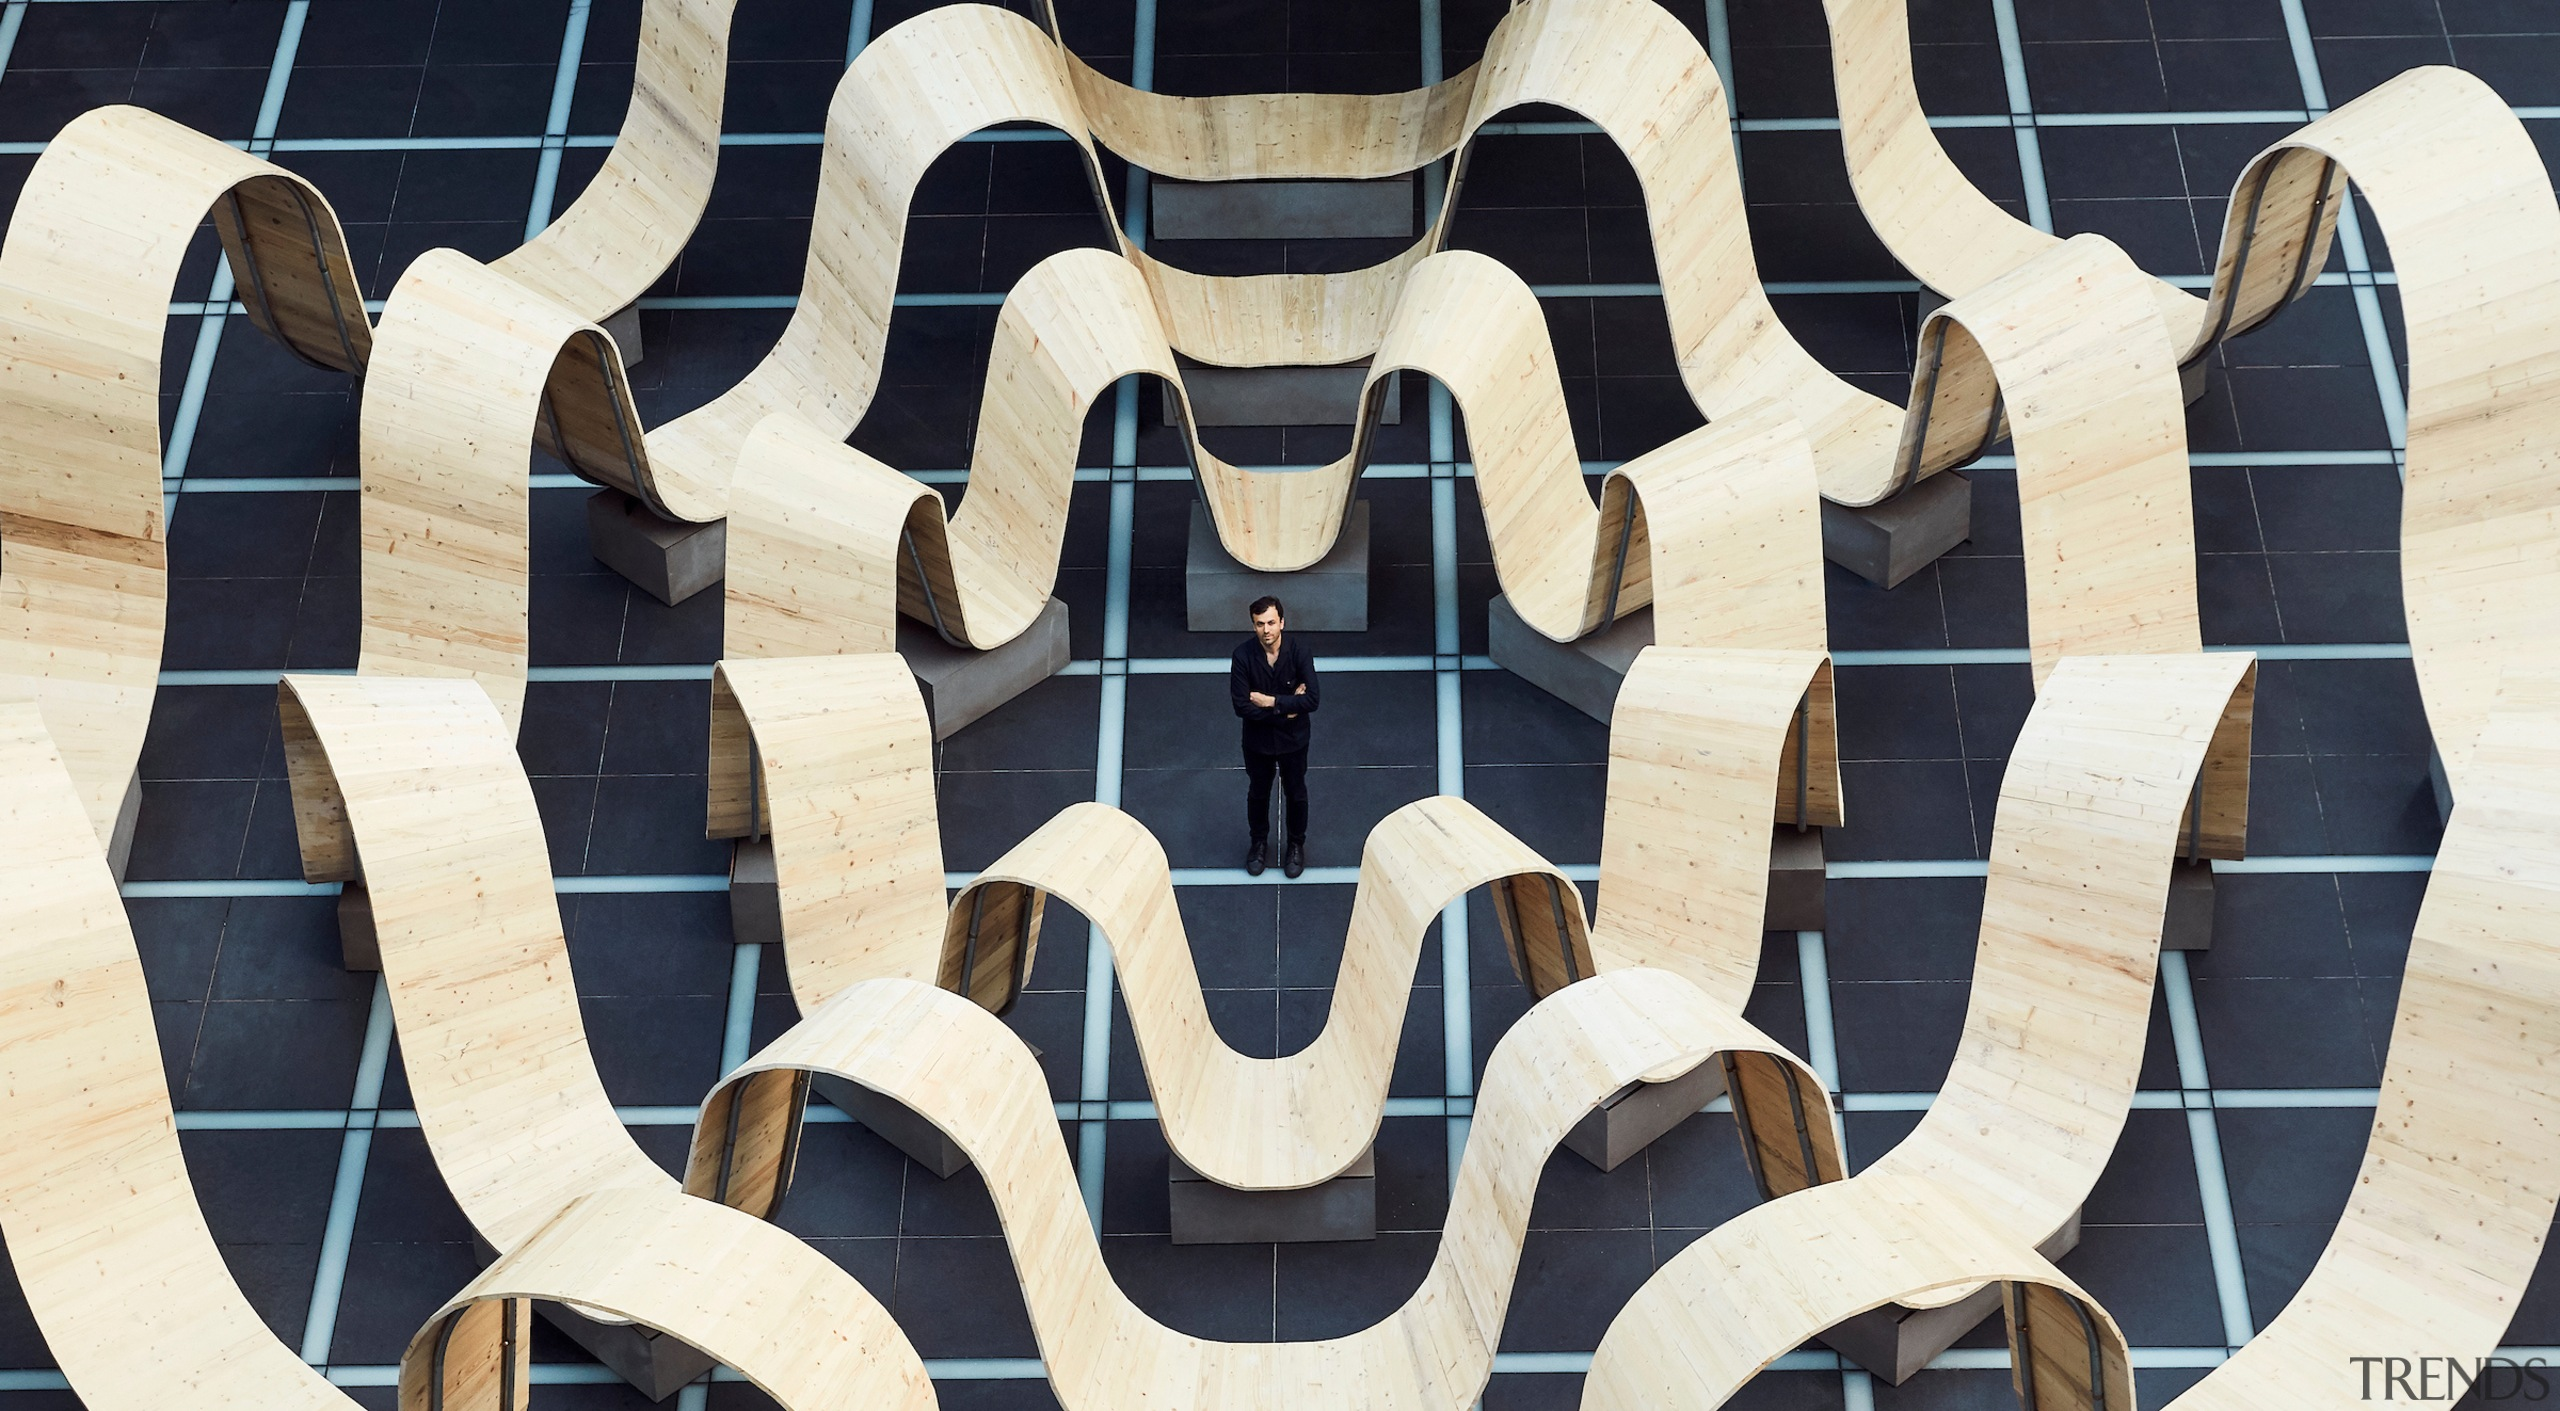 Made from scaffolding planks, Paul Cocksedge collaborated with architecture, design, pattern, symmetry, white, black